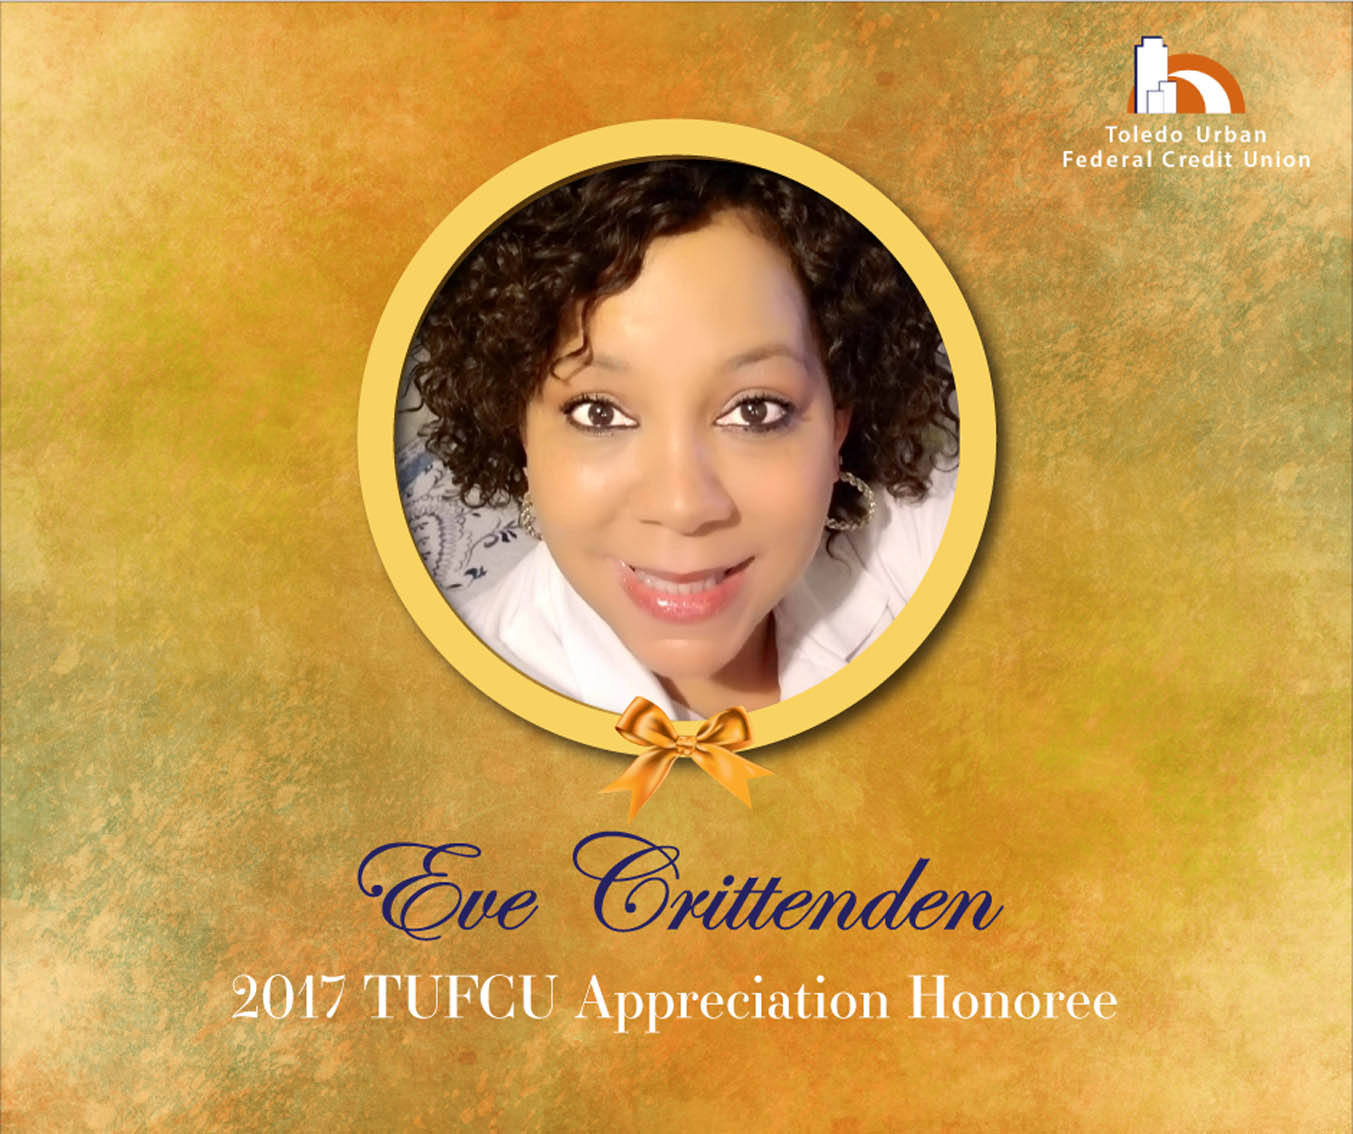 Image of Eve Crittenden, 2017 T.U.F.C.U. Appreciation Honoree.